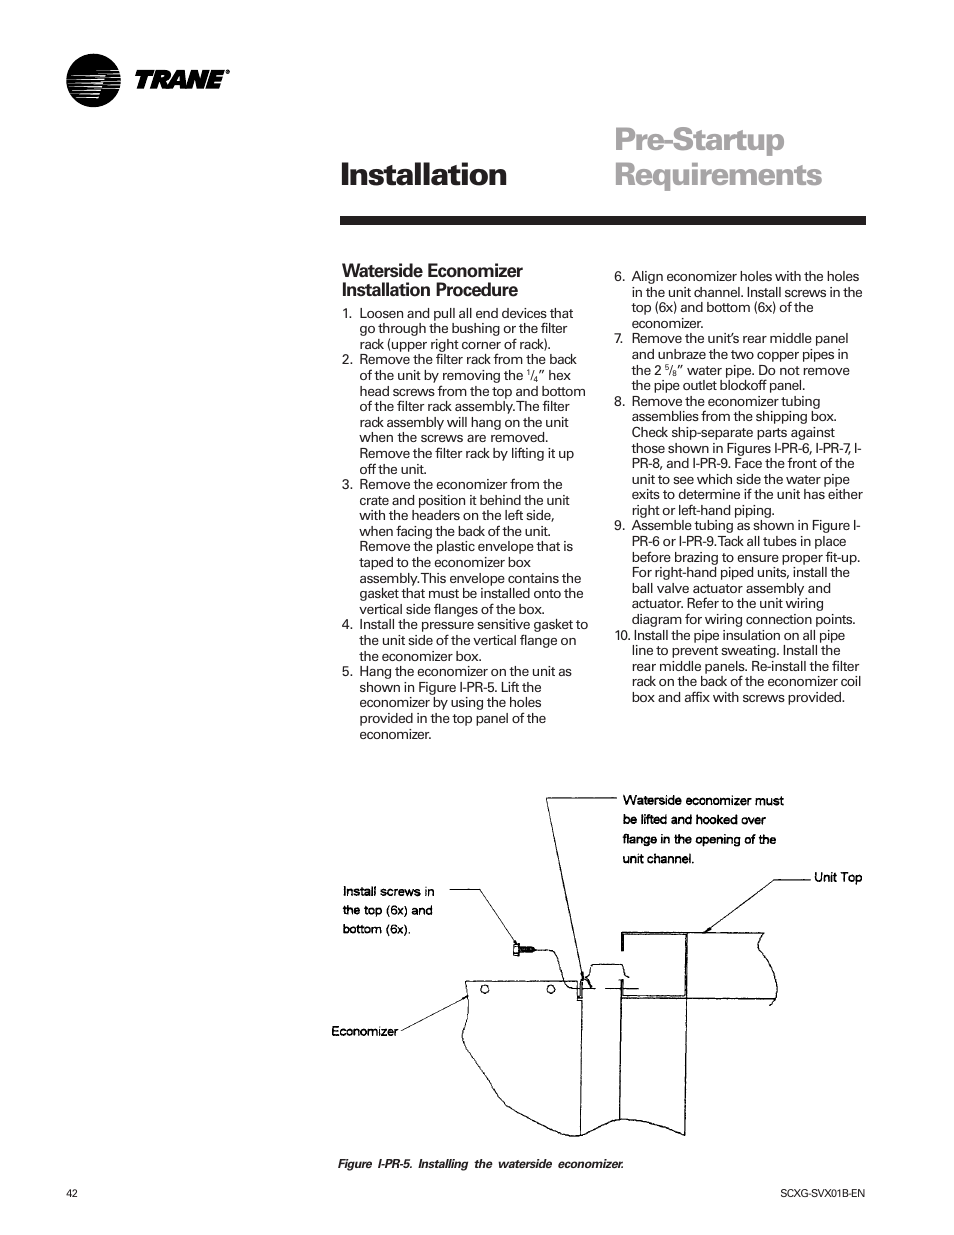 Pre Startup Requirements Installation Waterside Economizer Trane Wiring Diagrams Procedure Intellipak Scwg 020 User Manual Page 42 124